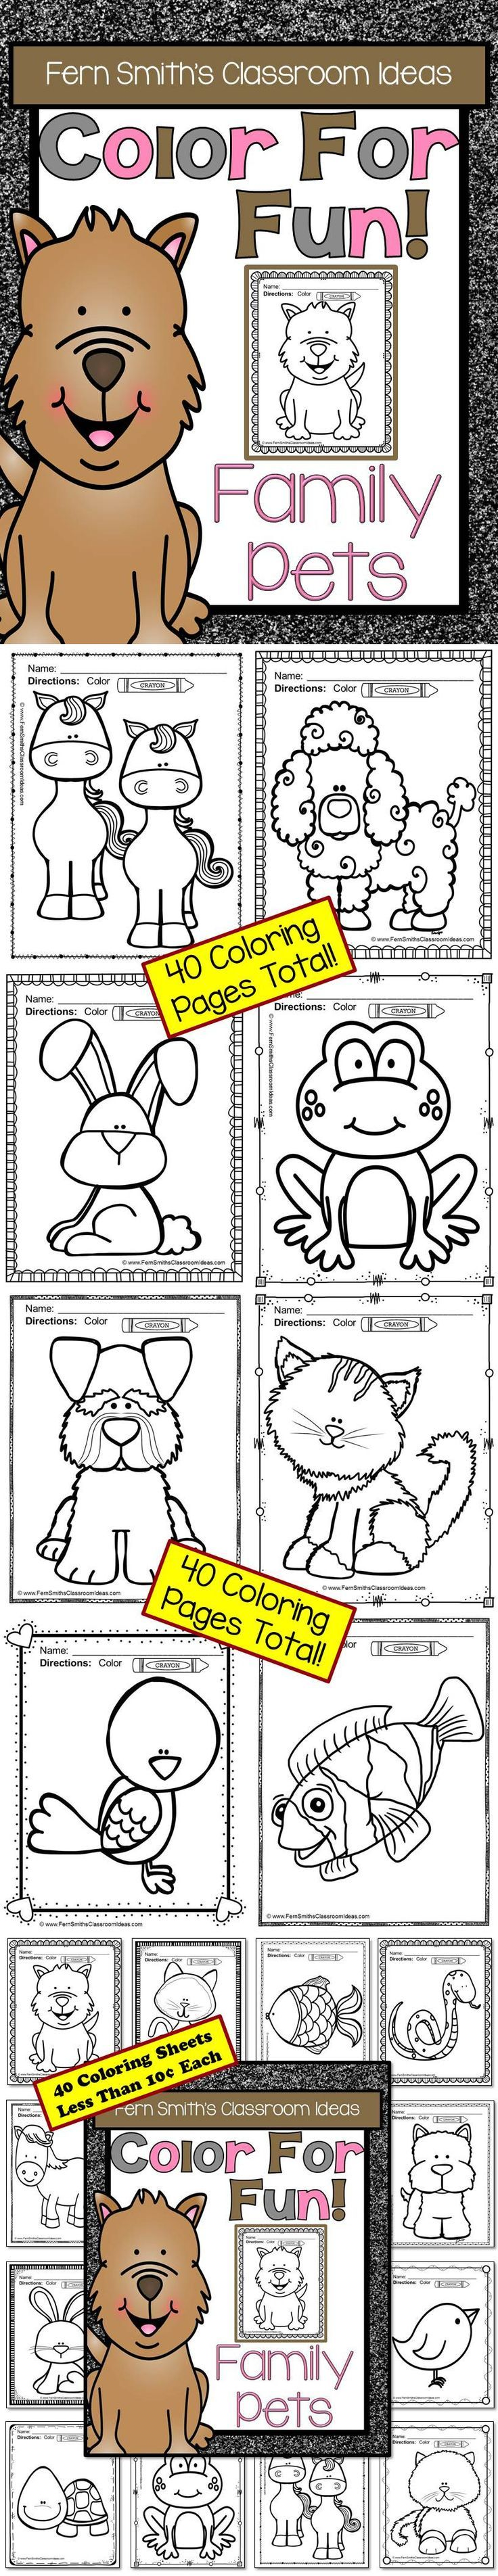 Free printable coloring pages veterinarians - Family Pets Coloring Pages